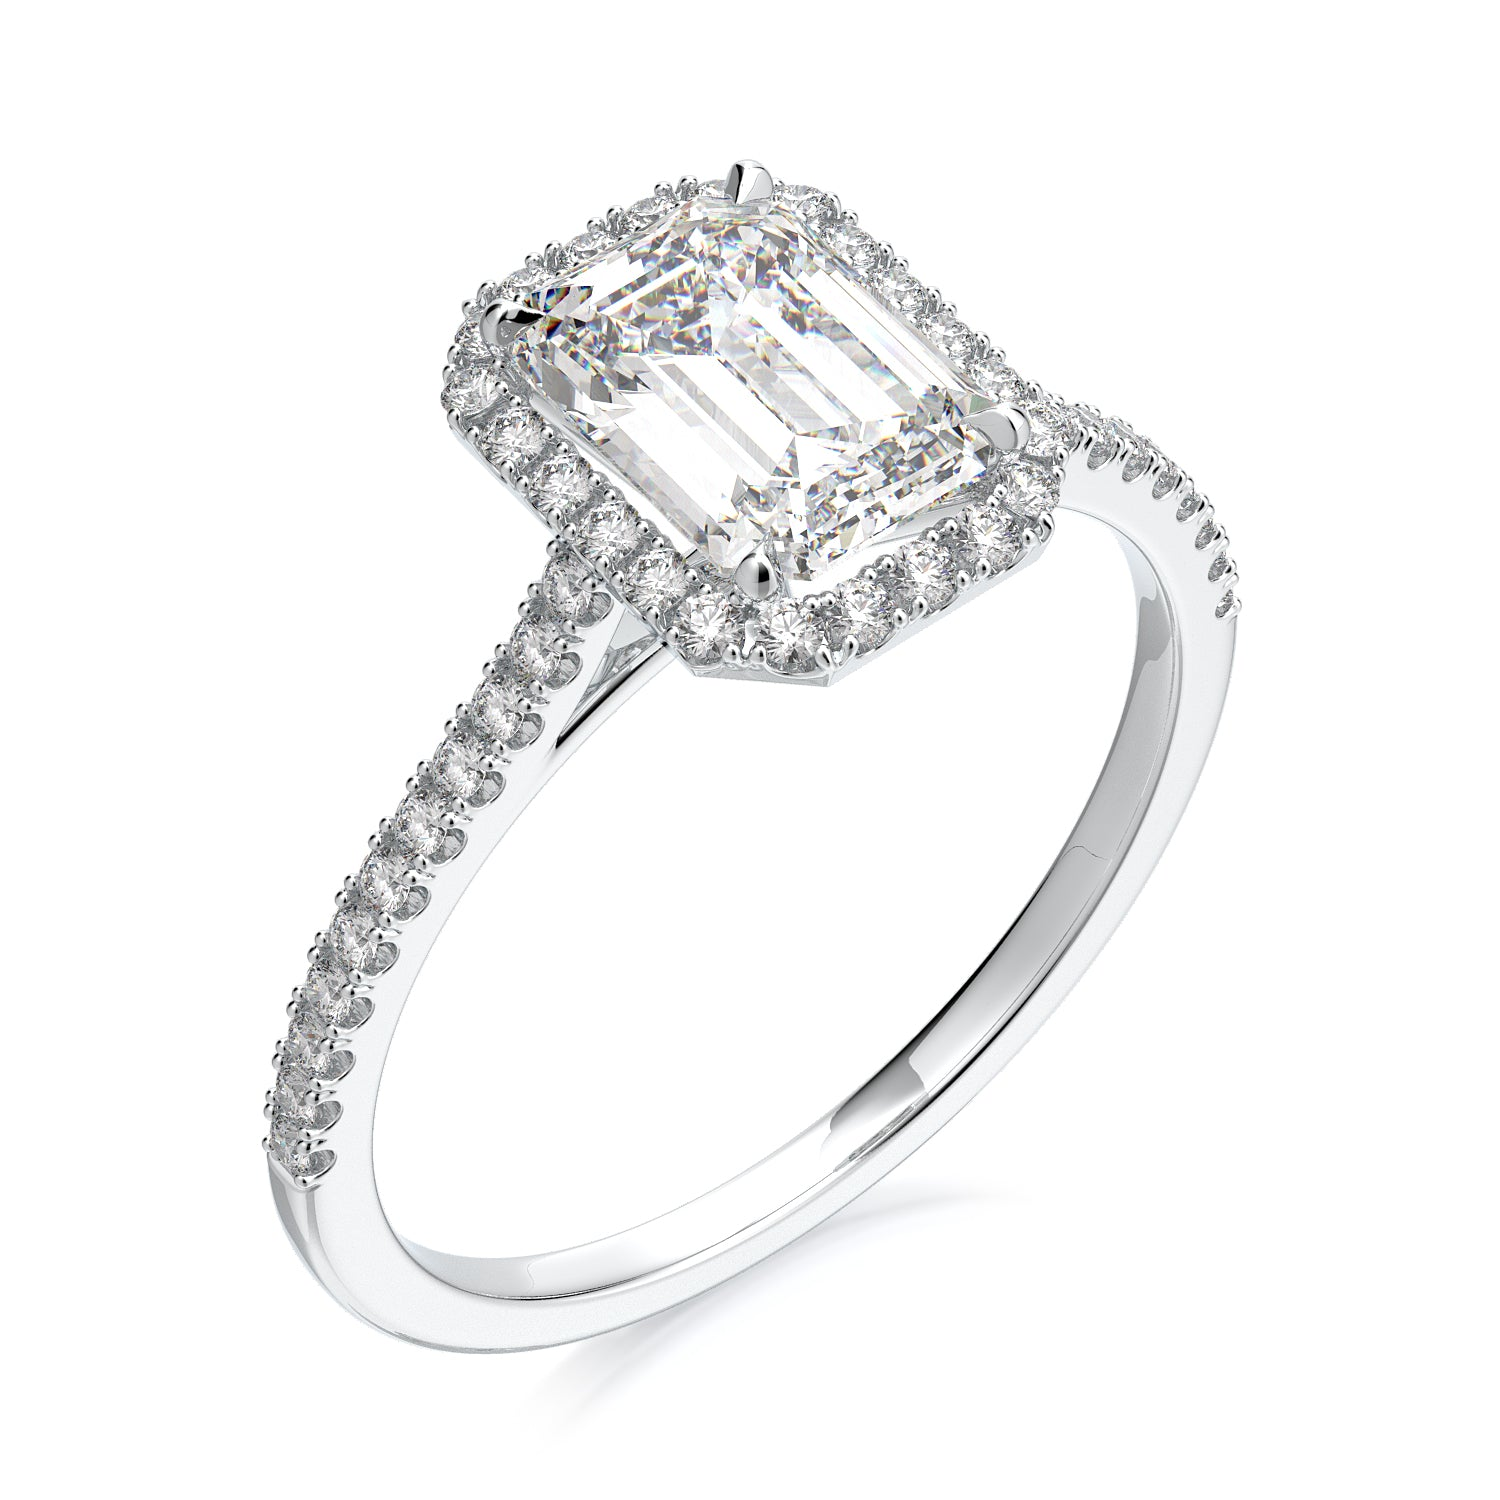 Calliope Engagement Ring - Emerald Cut - Solitaire - Diamond Halo - Platinum